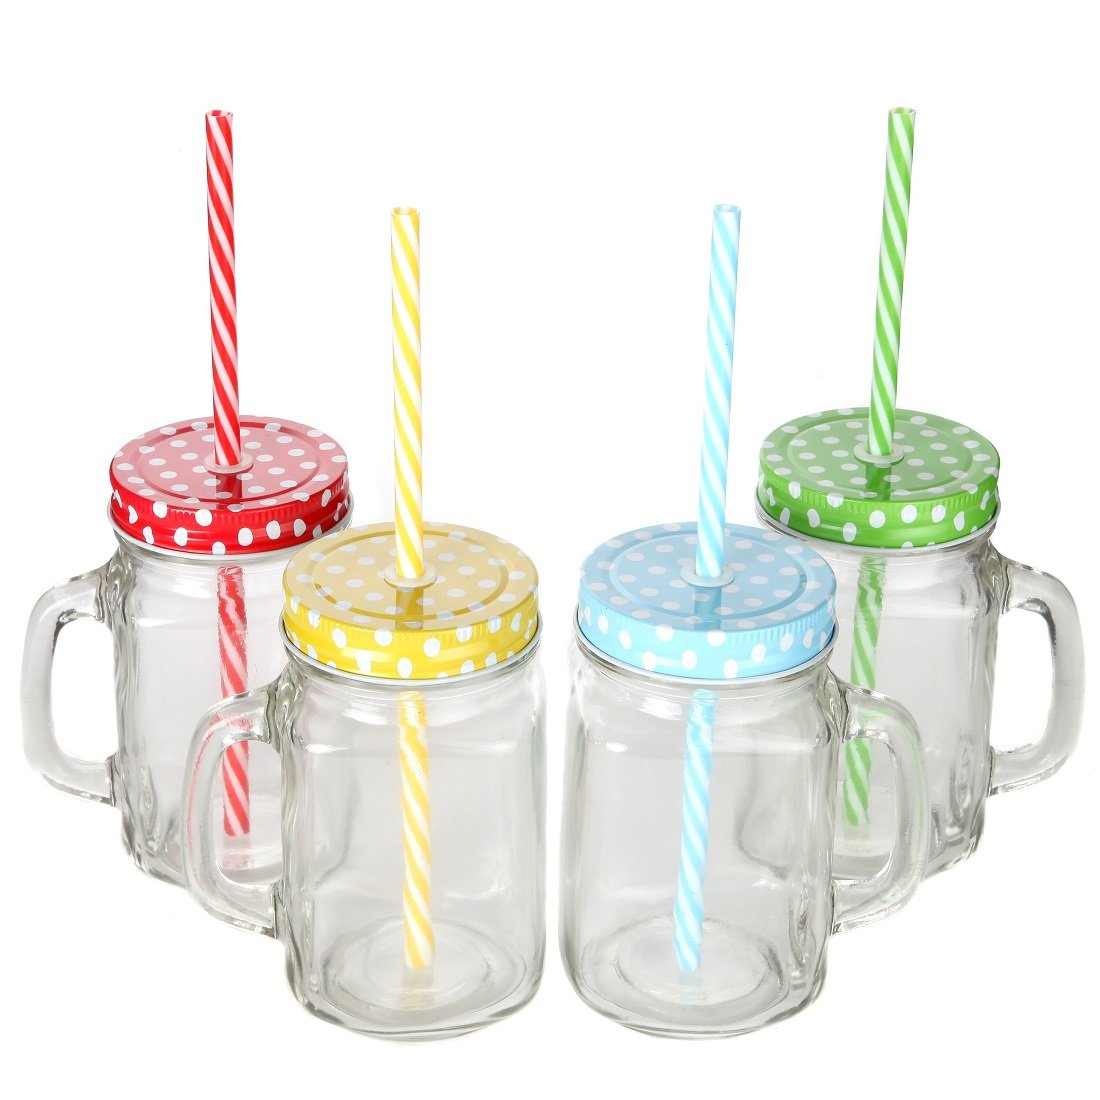 Lily's Home Old Fashioned Mason Jar Mugs with Handles, Polka Dot Lids and Matching Reusable Plastic Straws, Great as Old Fashion Drinking Glasses at BBQs and Parties, Clear (16 oz. Each, Set of 4) by Lilyshome (Image #1)